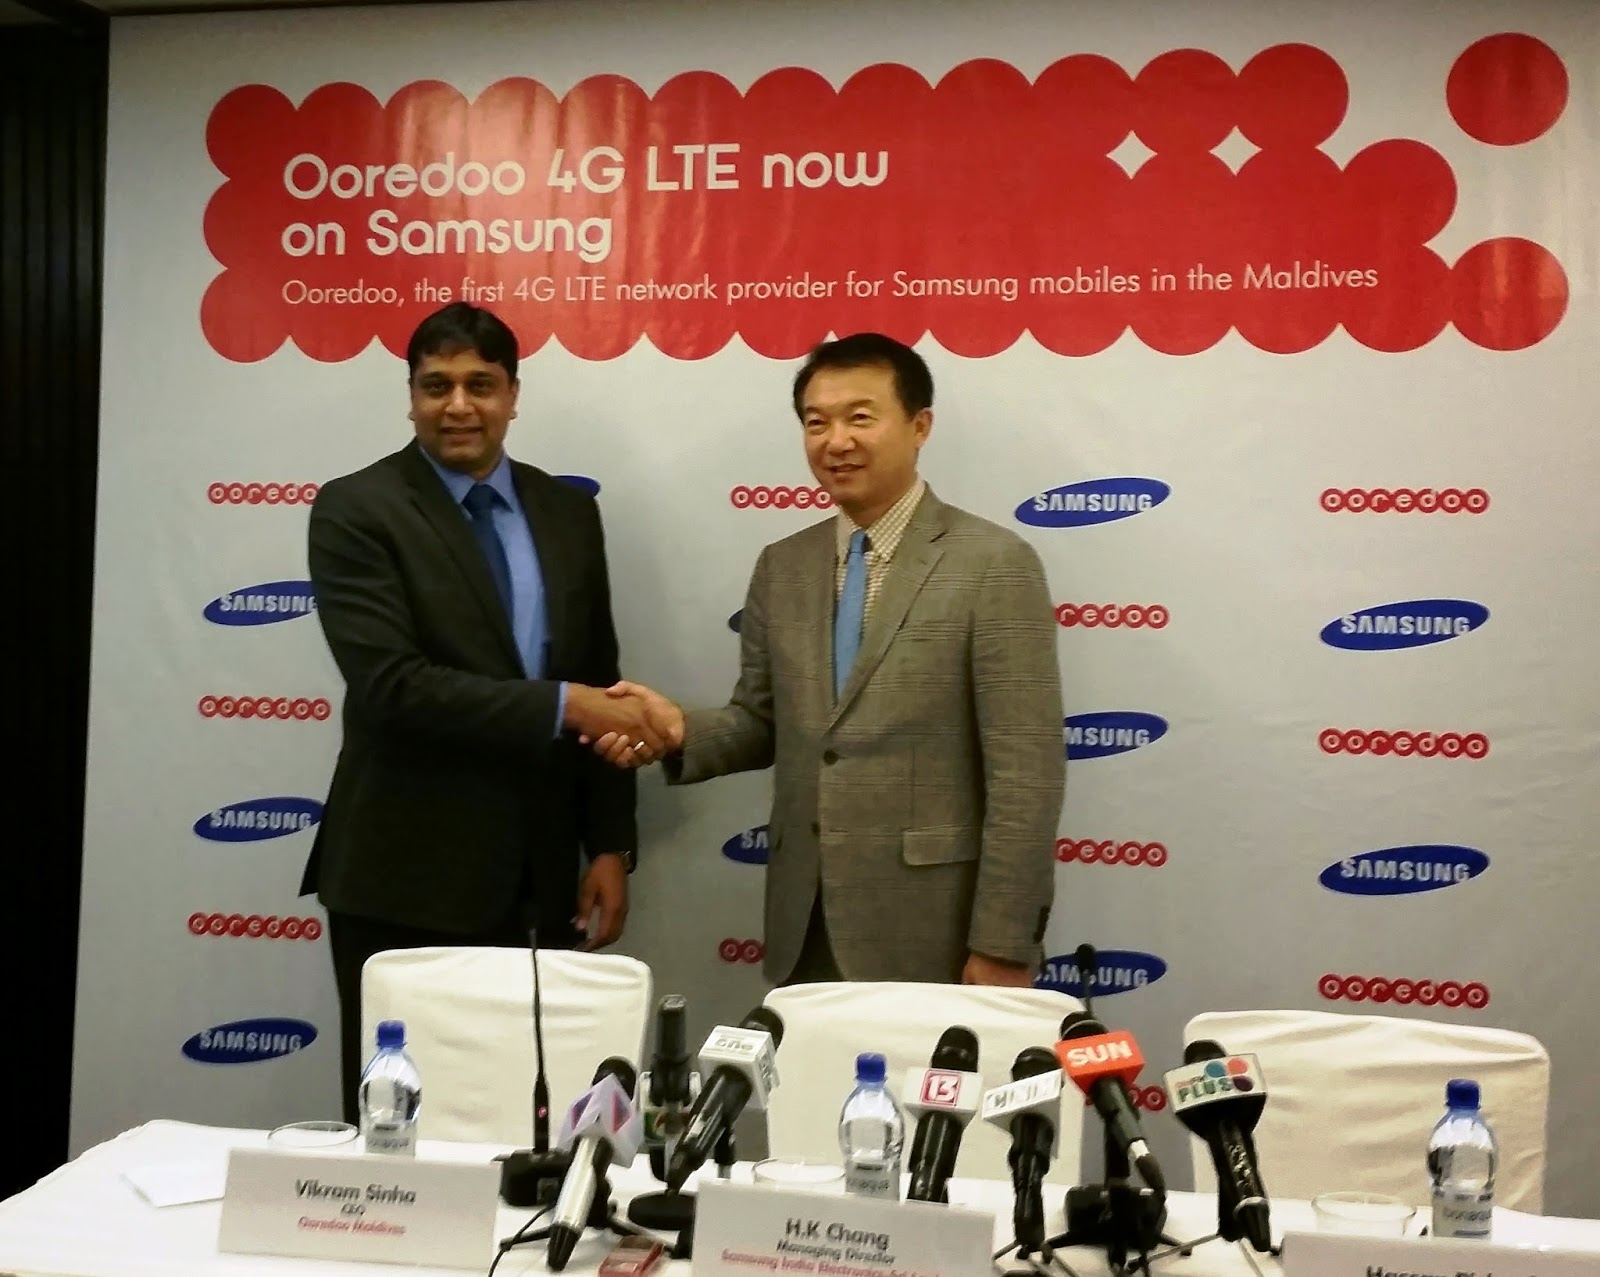 H.K. Chang, Managing Director, Samsung  India  Electronics- Sri Lanka Branch Office  and Vikram Sinha, CEO of Ooredoo officially announce their partnership in the Maldives.jpg